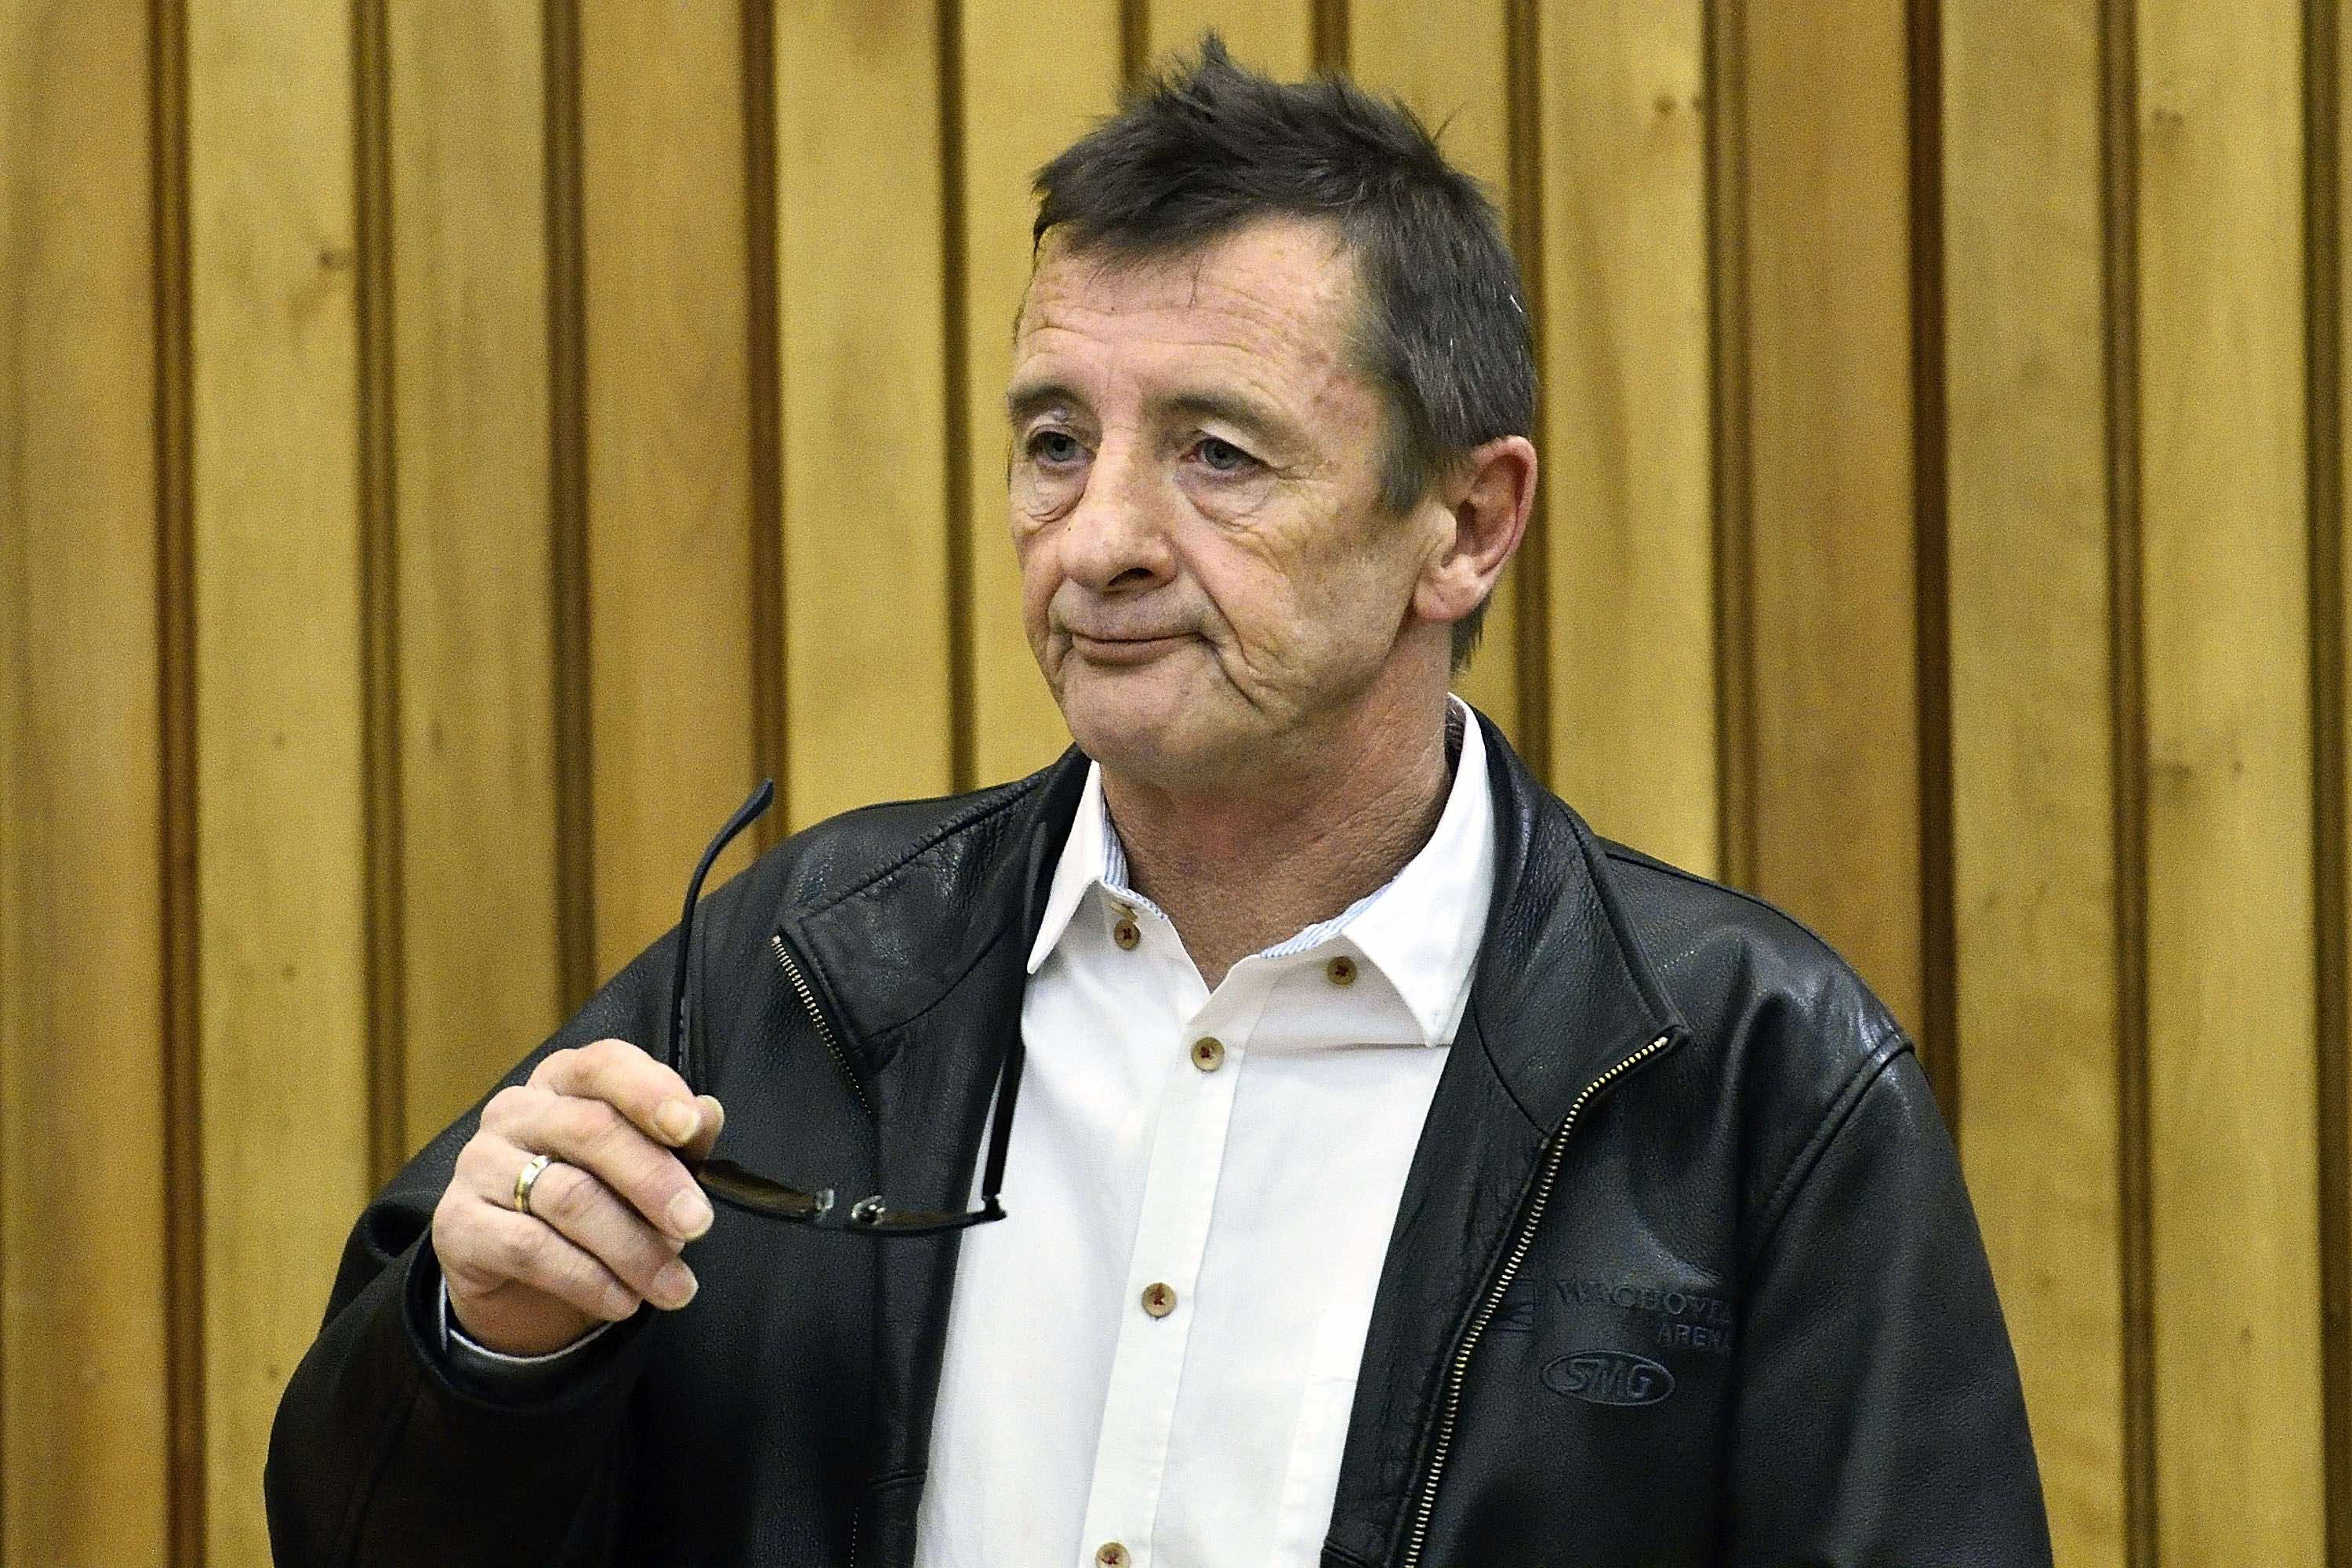 Former AC/DC drummer Phil Rudd stands in the dock at the District Court after violating the conditions on his sentenced 8 mon